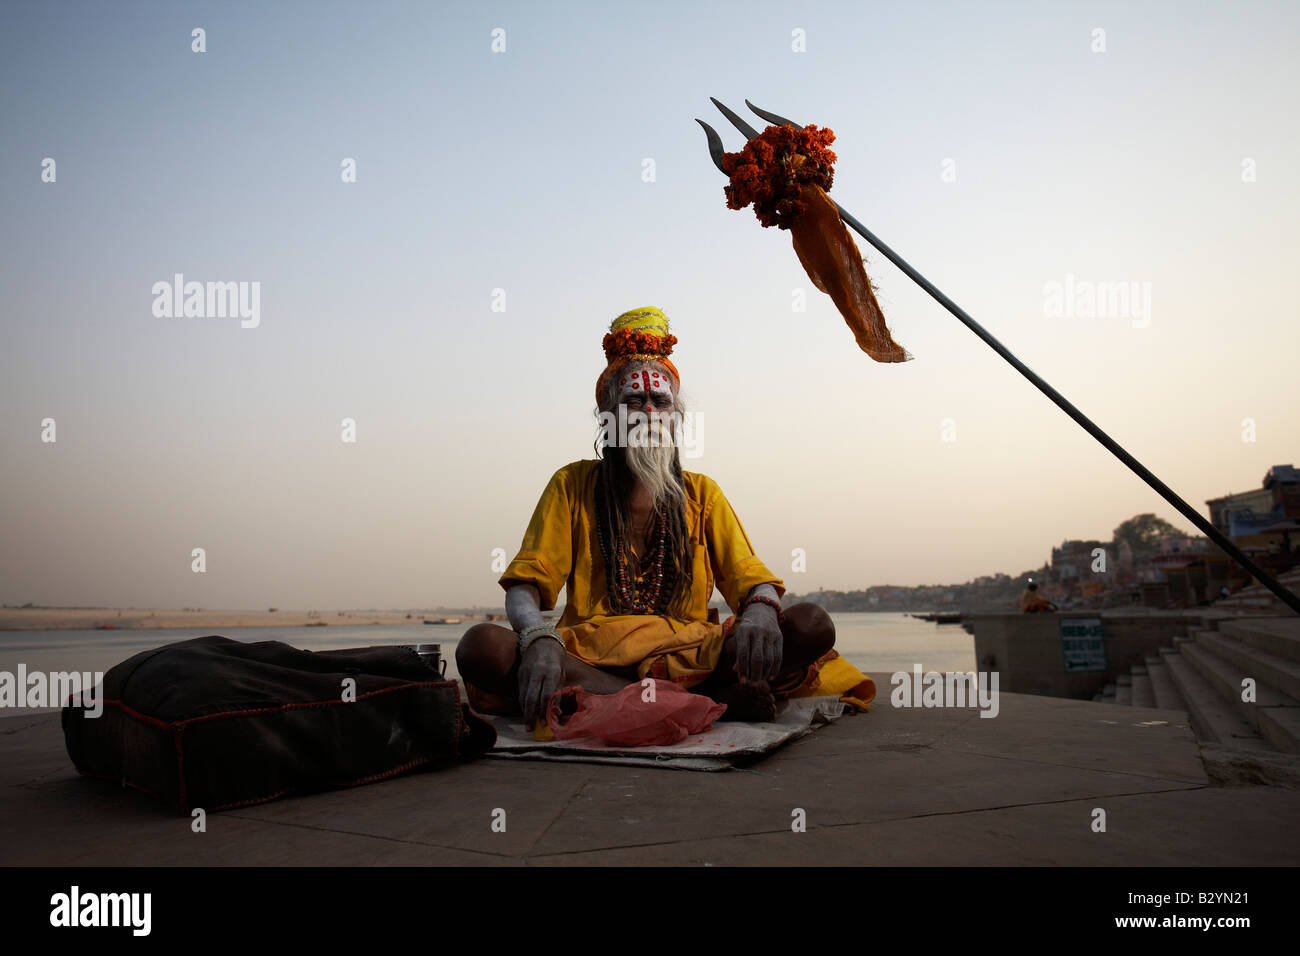 An Indian Sadhu Man Sits In Meditation Posture Near The Bank Of Ganges River